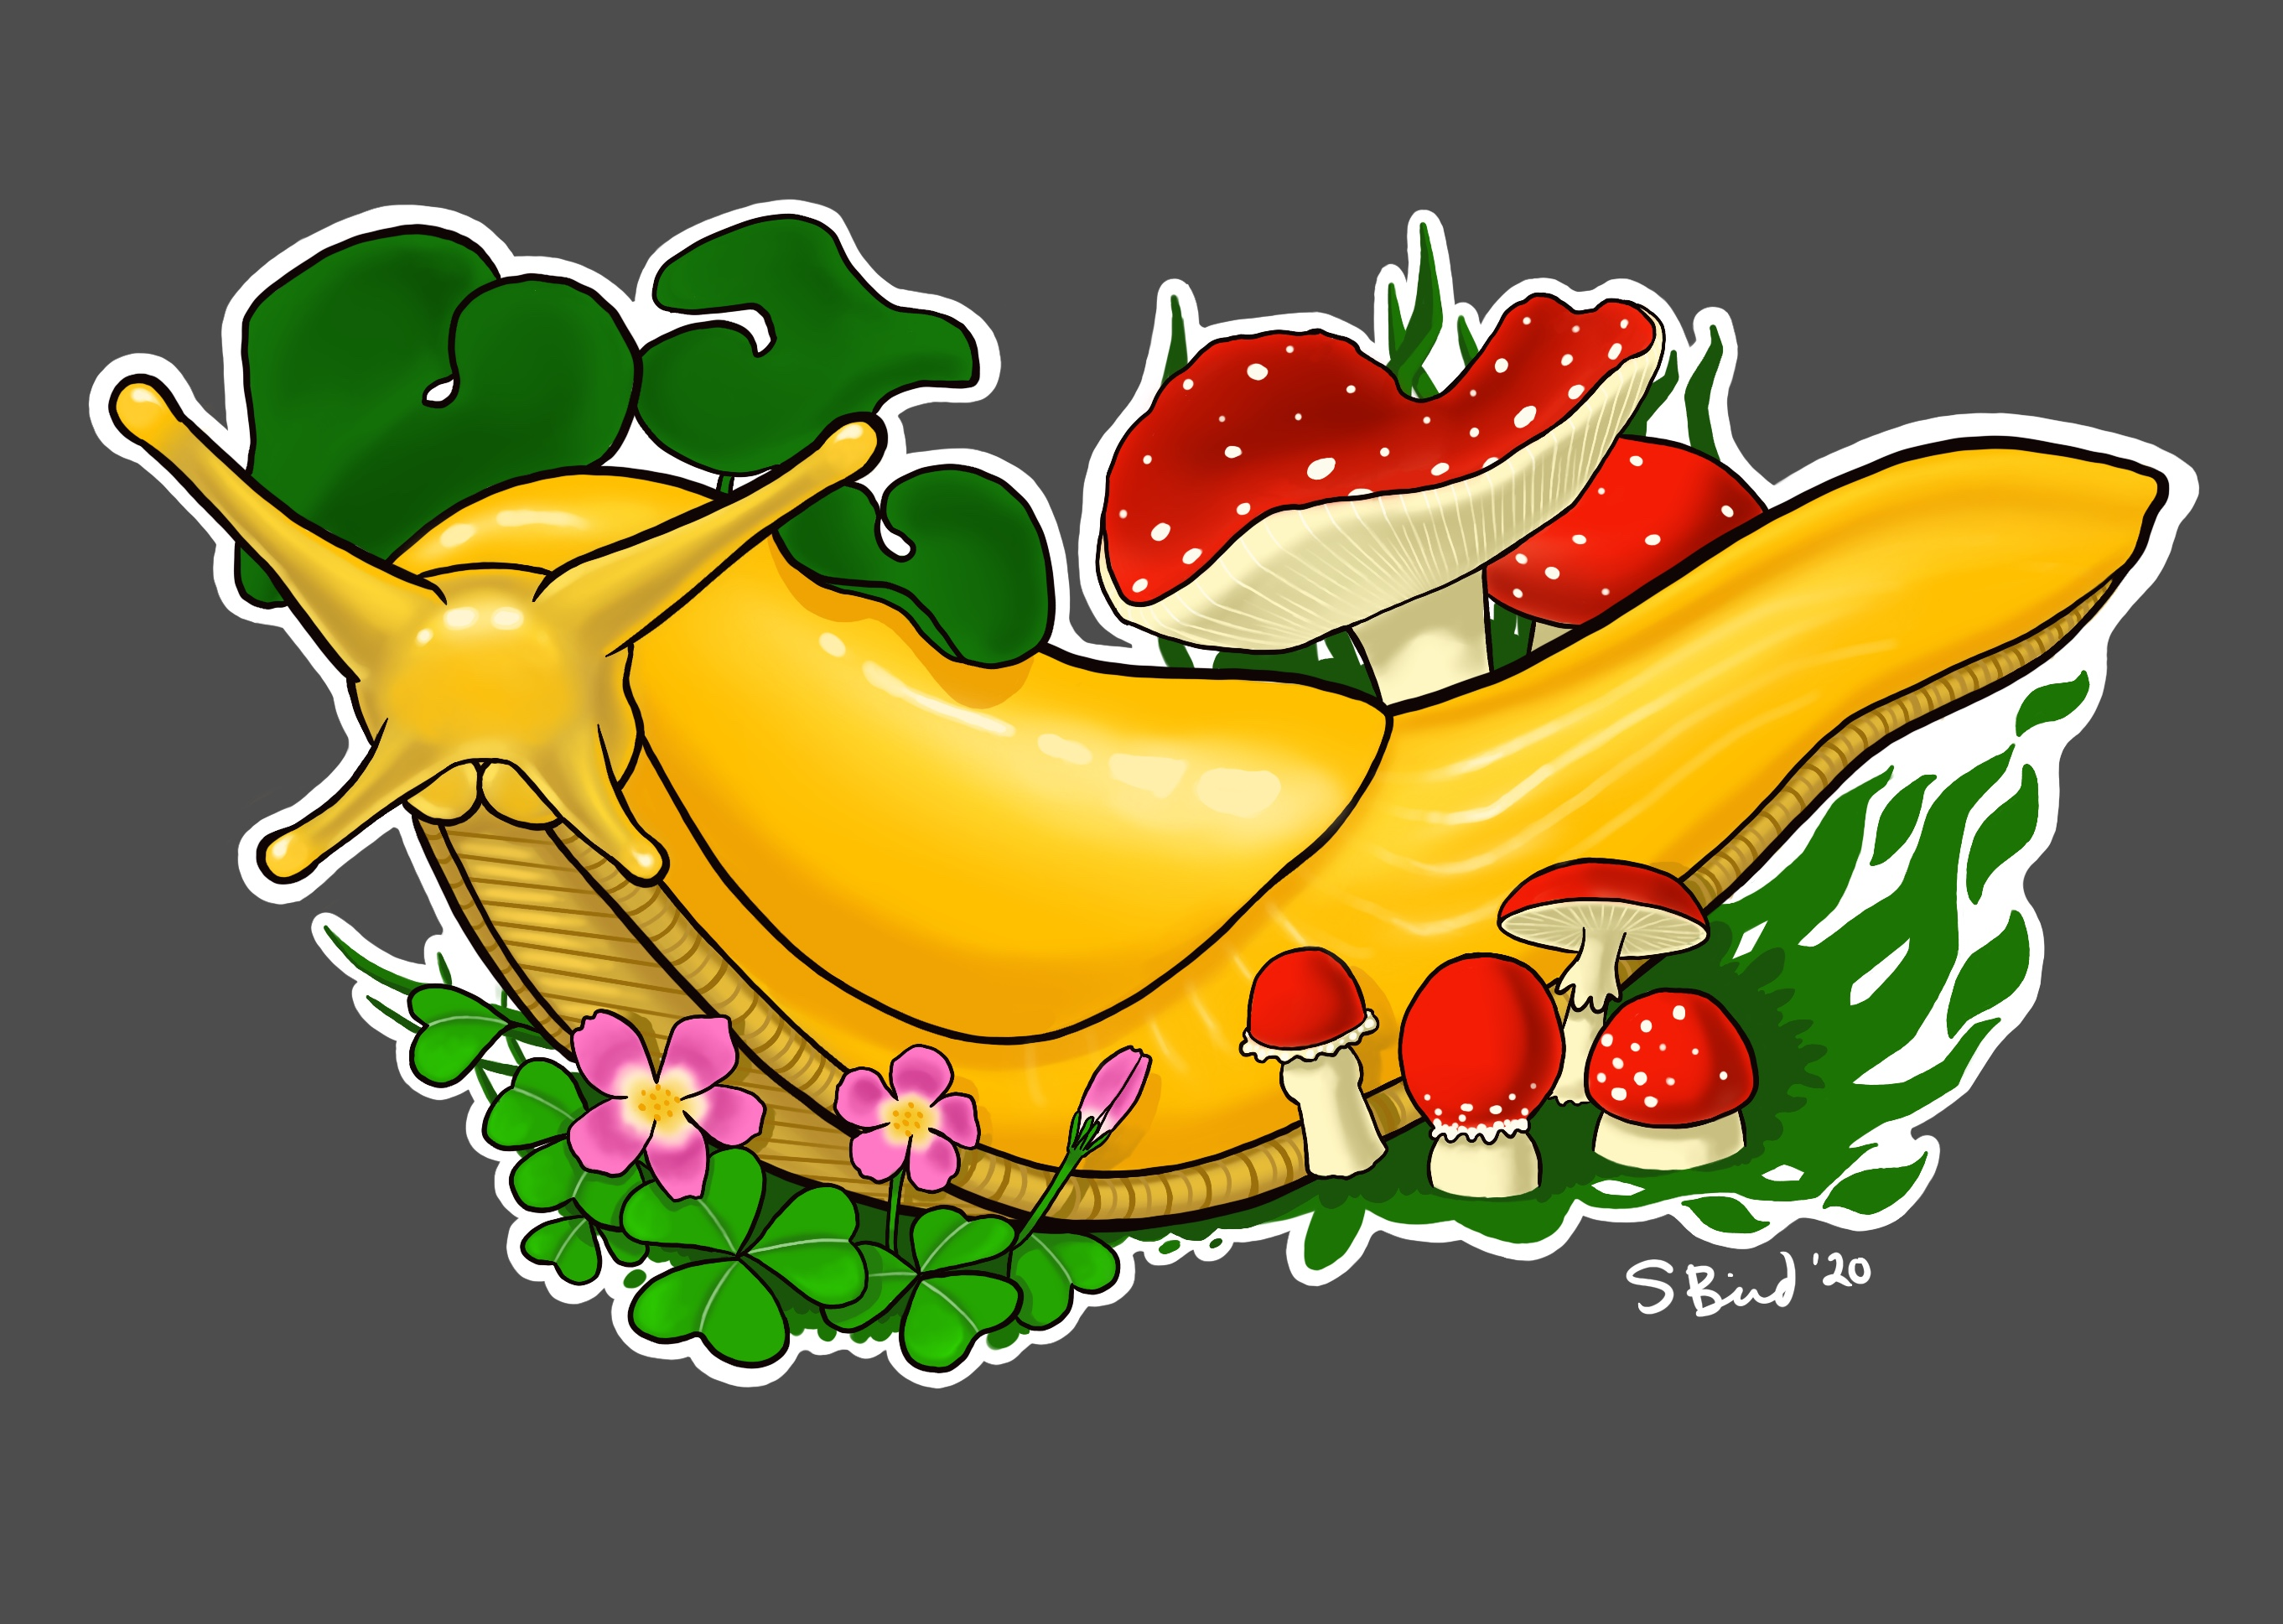 Banana Slug Design